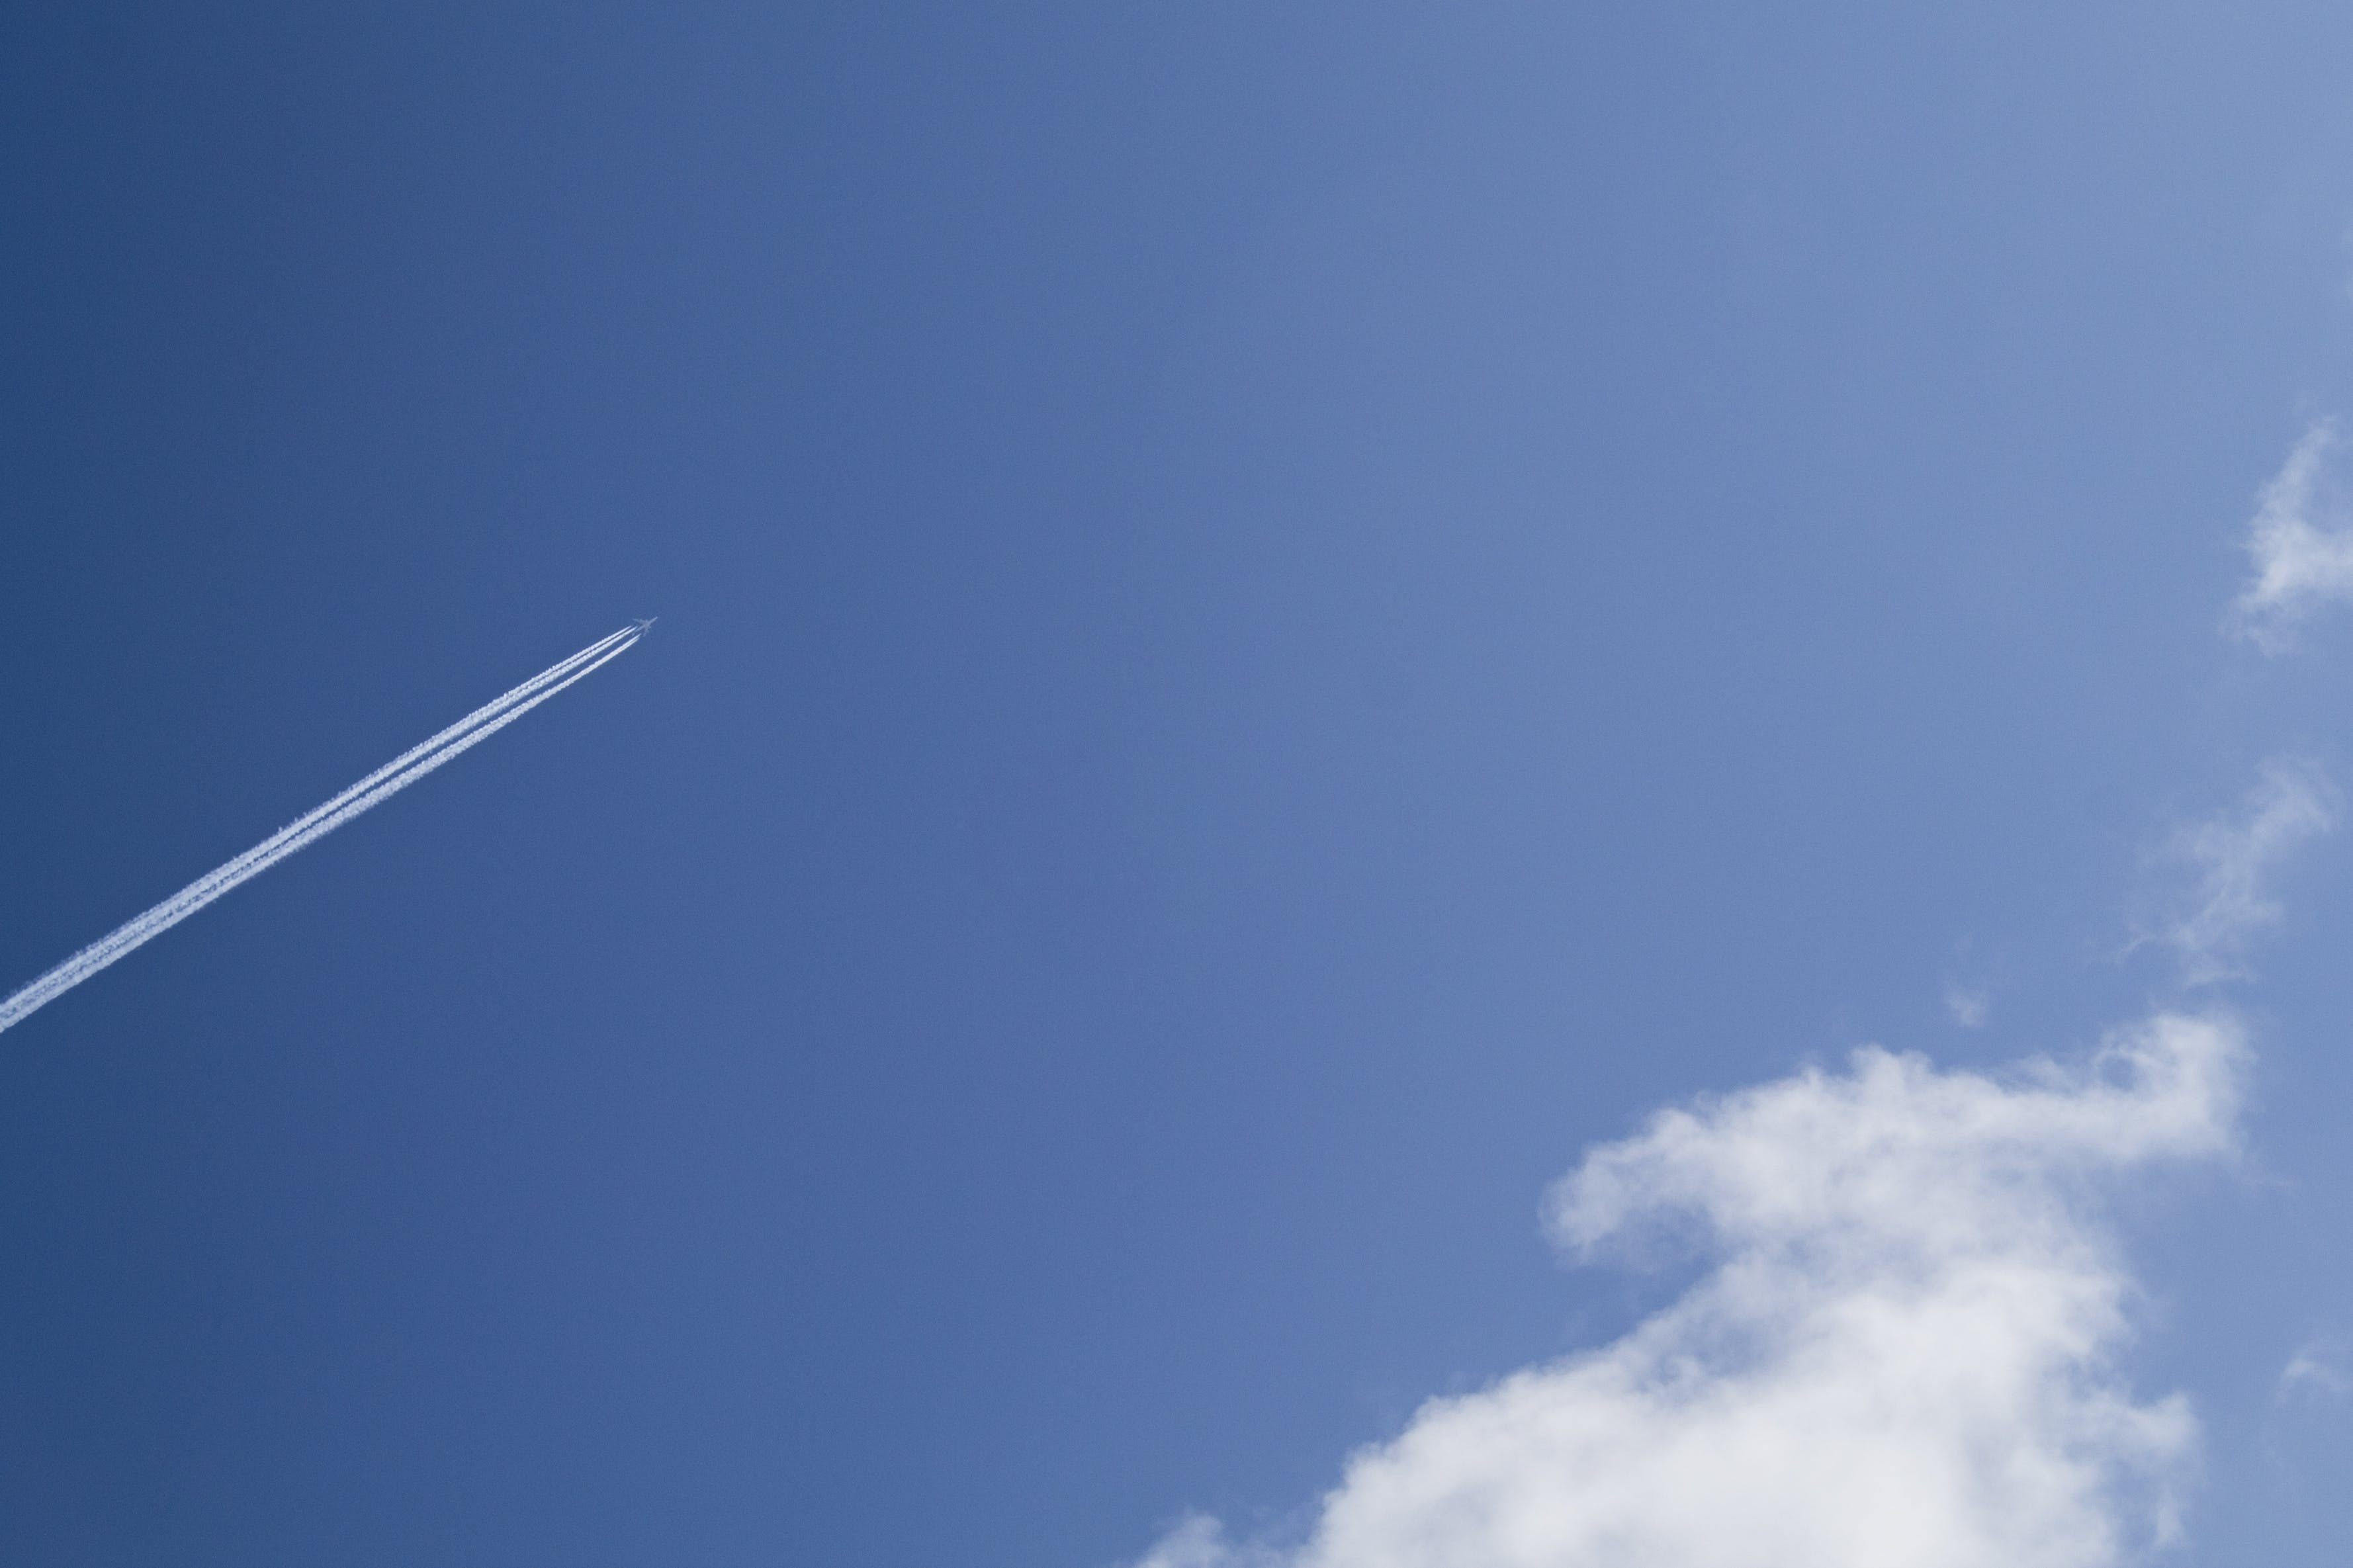 Jet Under Clear Blue Sky during Daytime